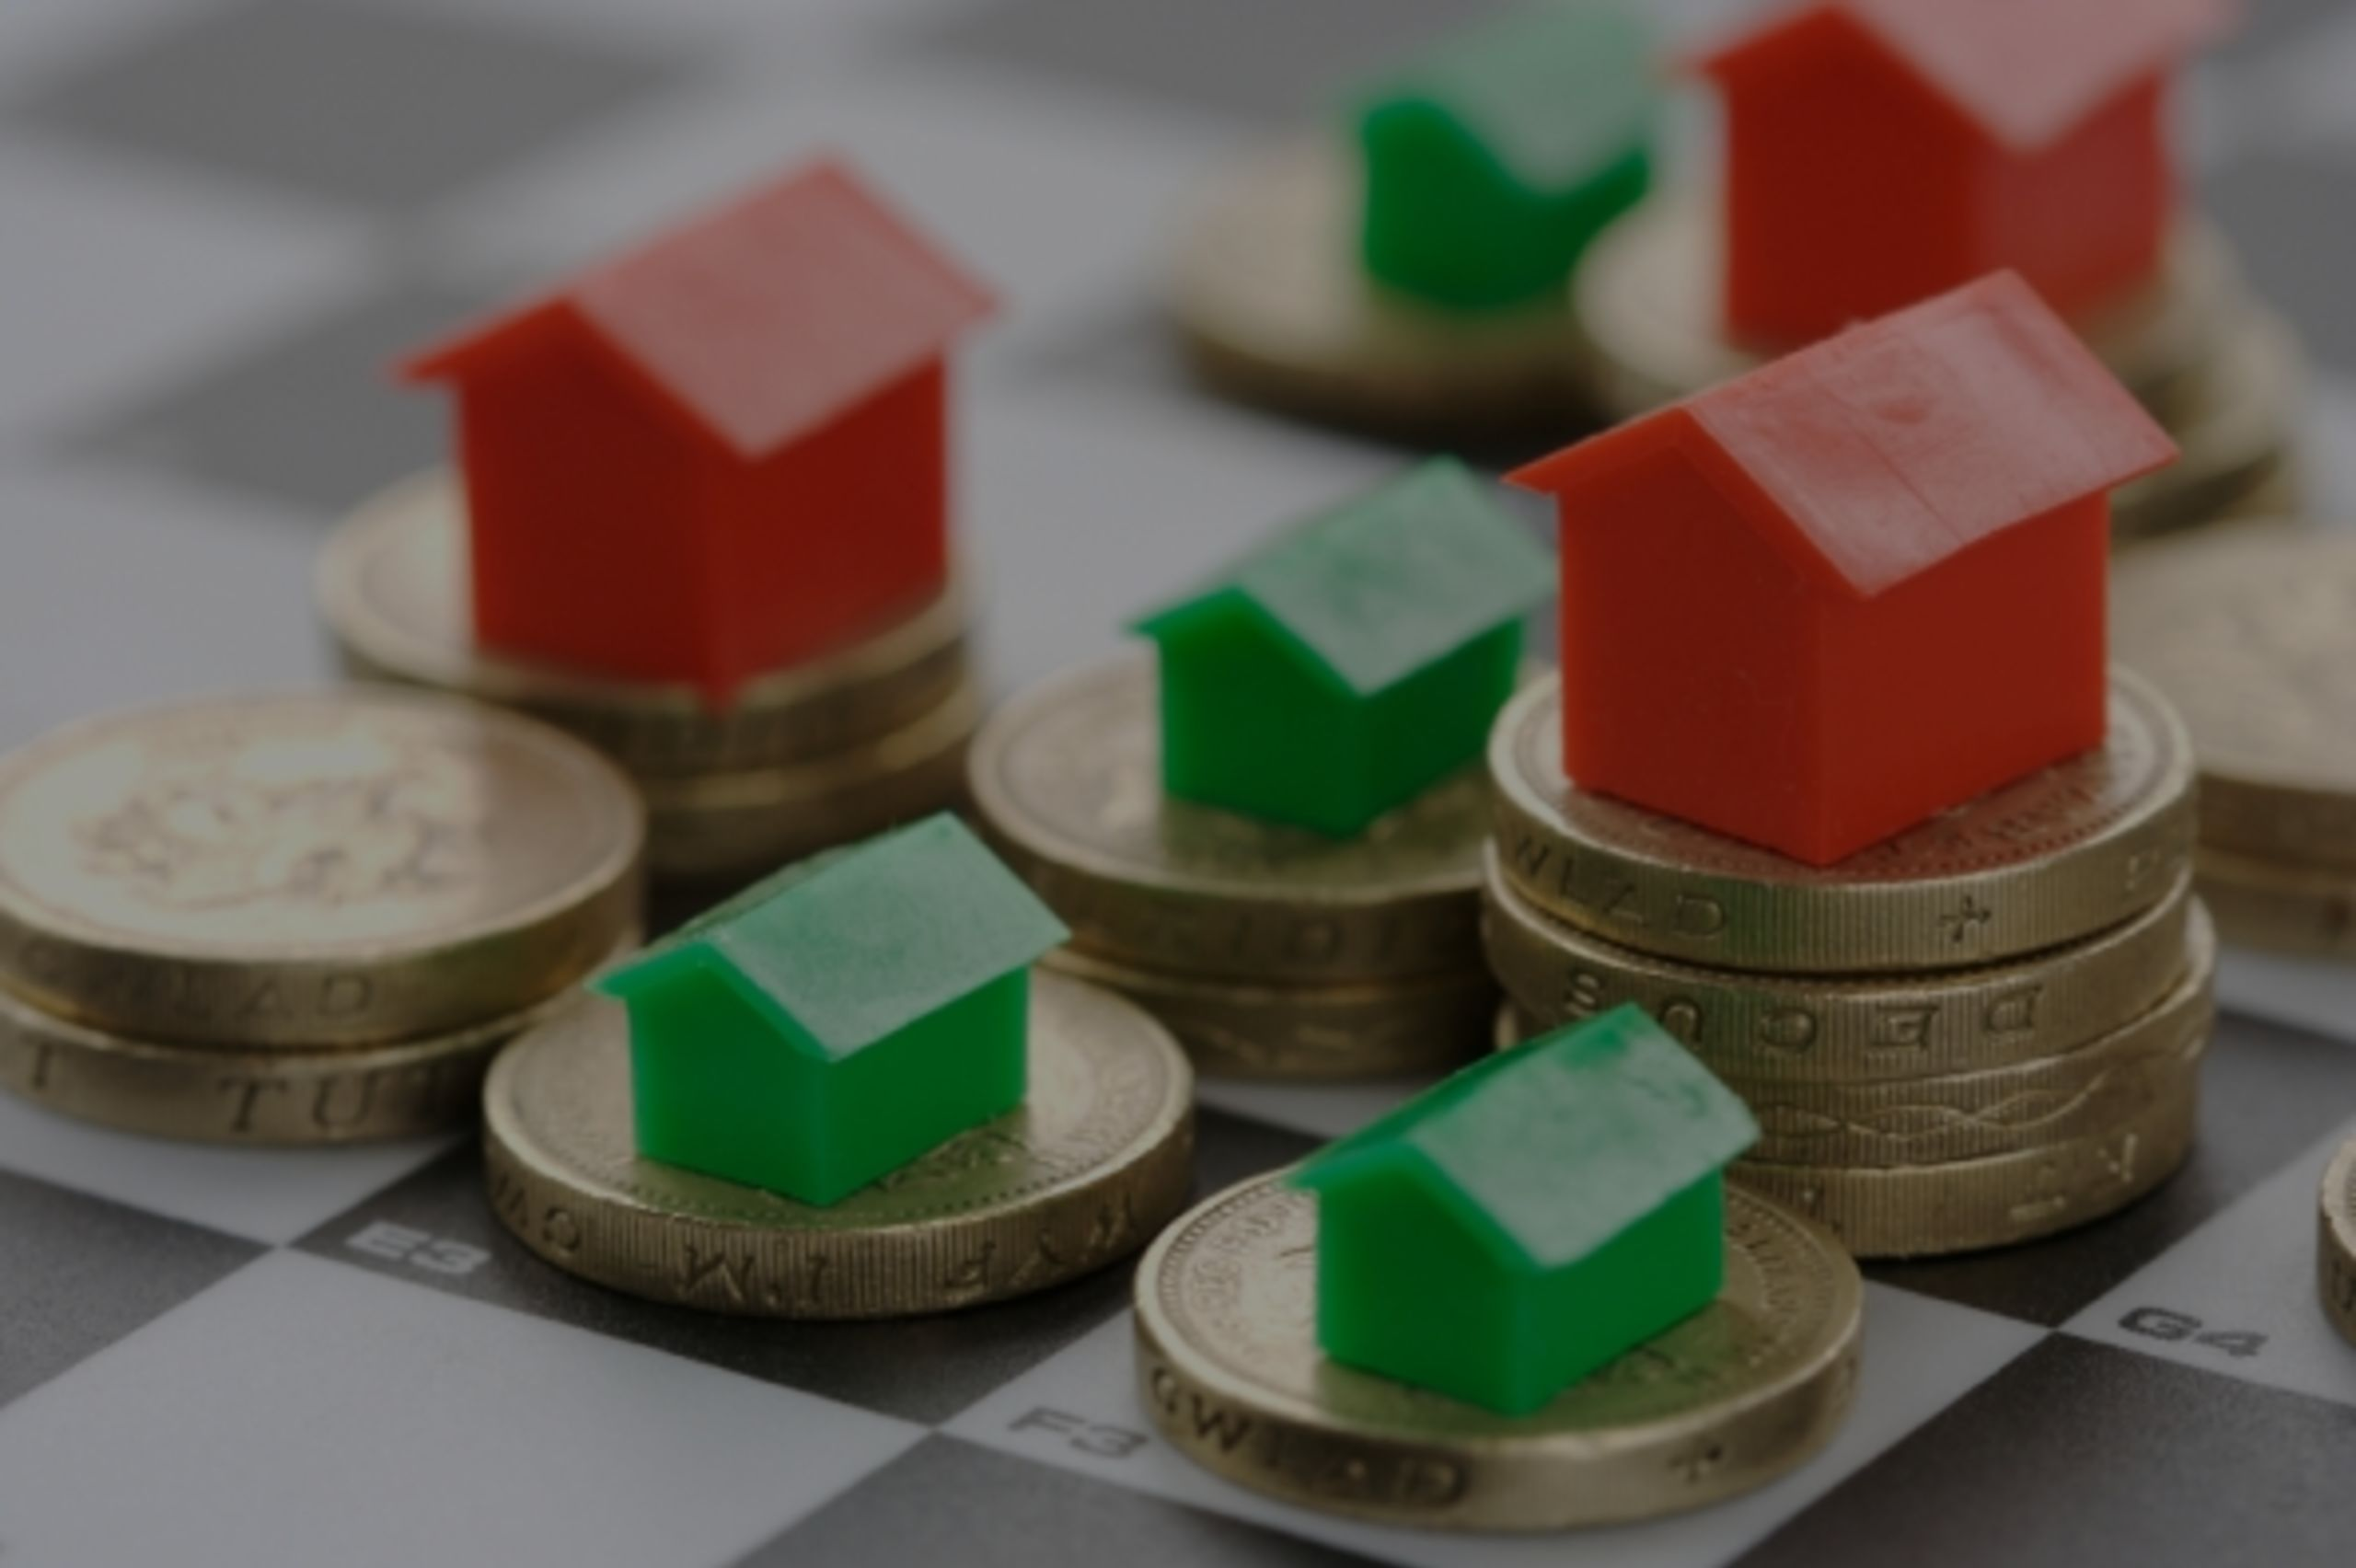 Real Estate as an investment: